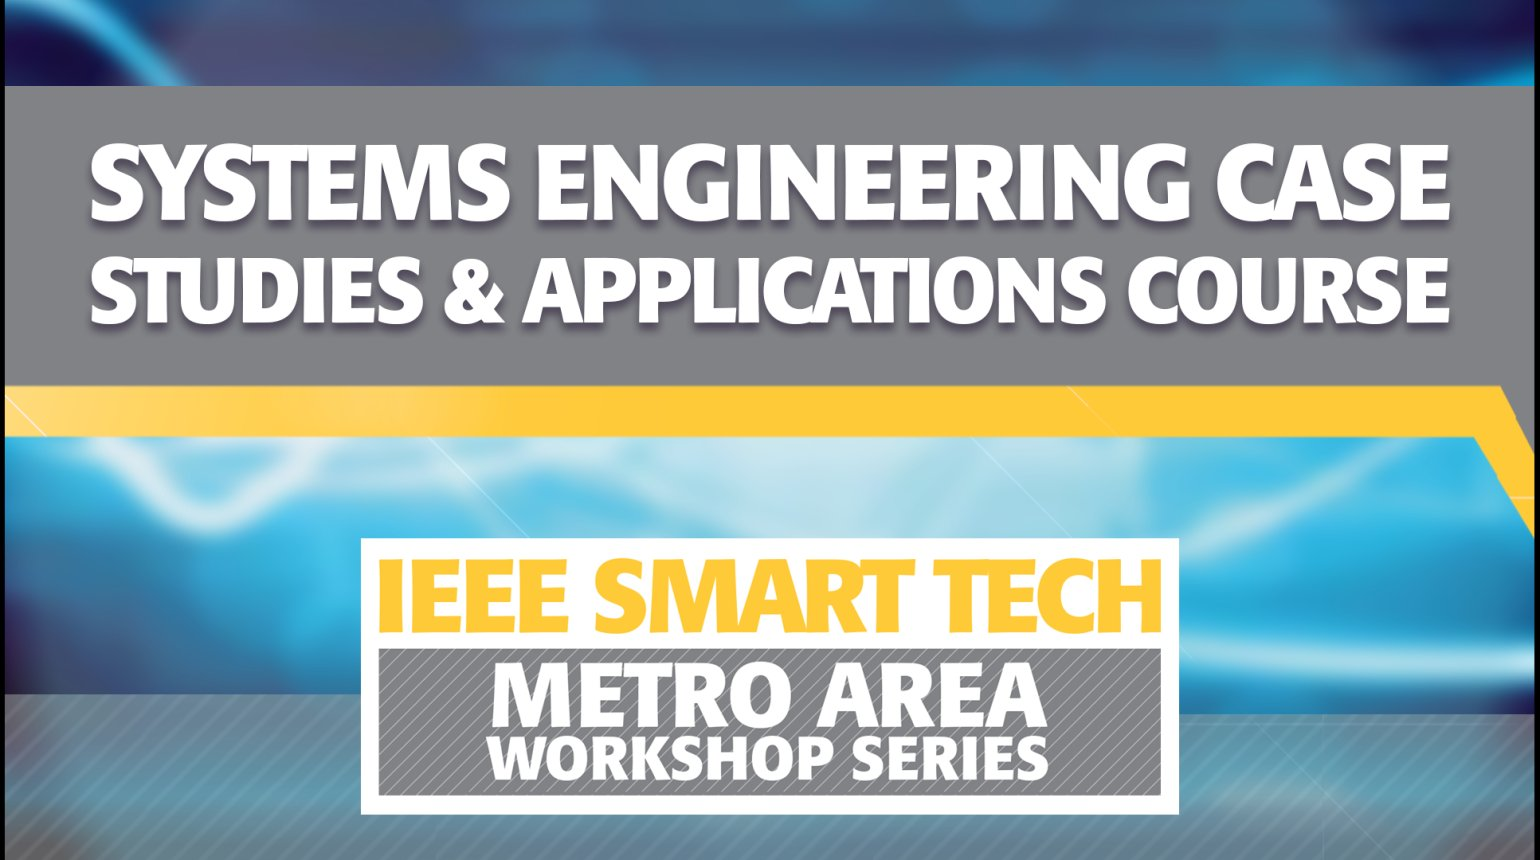 Systems Engineering Case Studies and Applications Course - IEEE Smart Tech